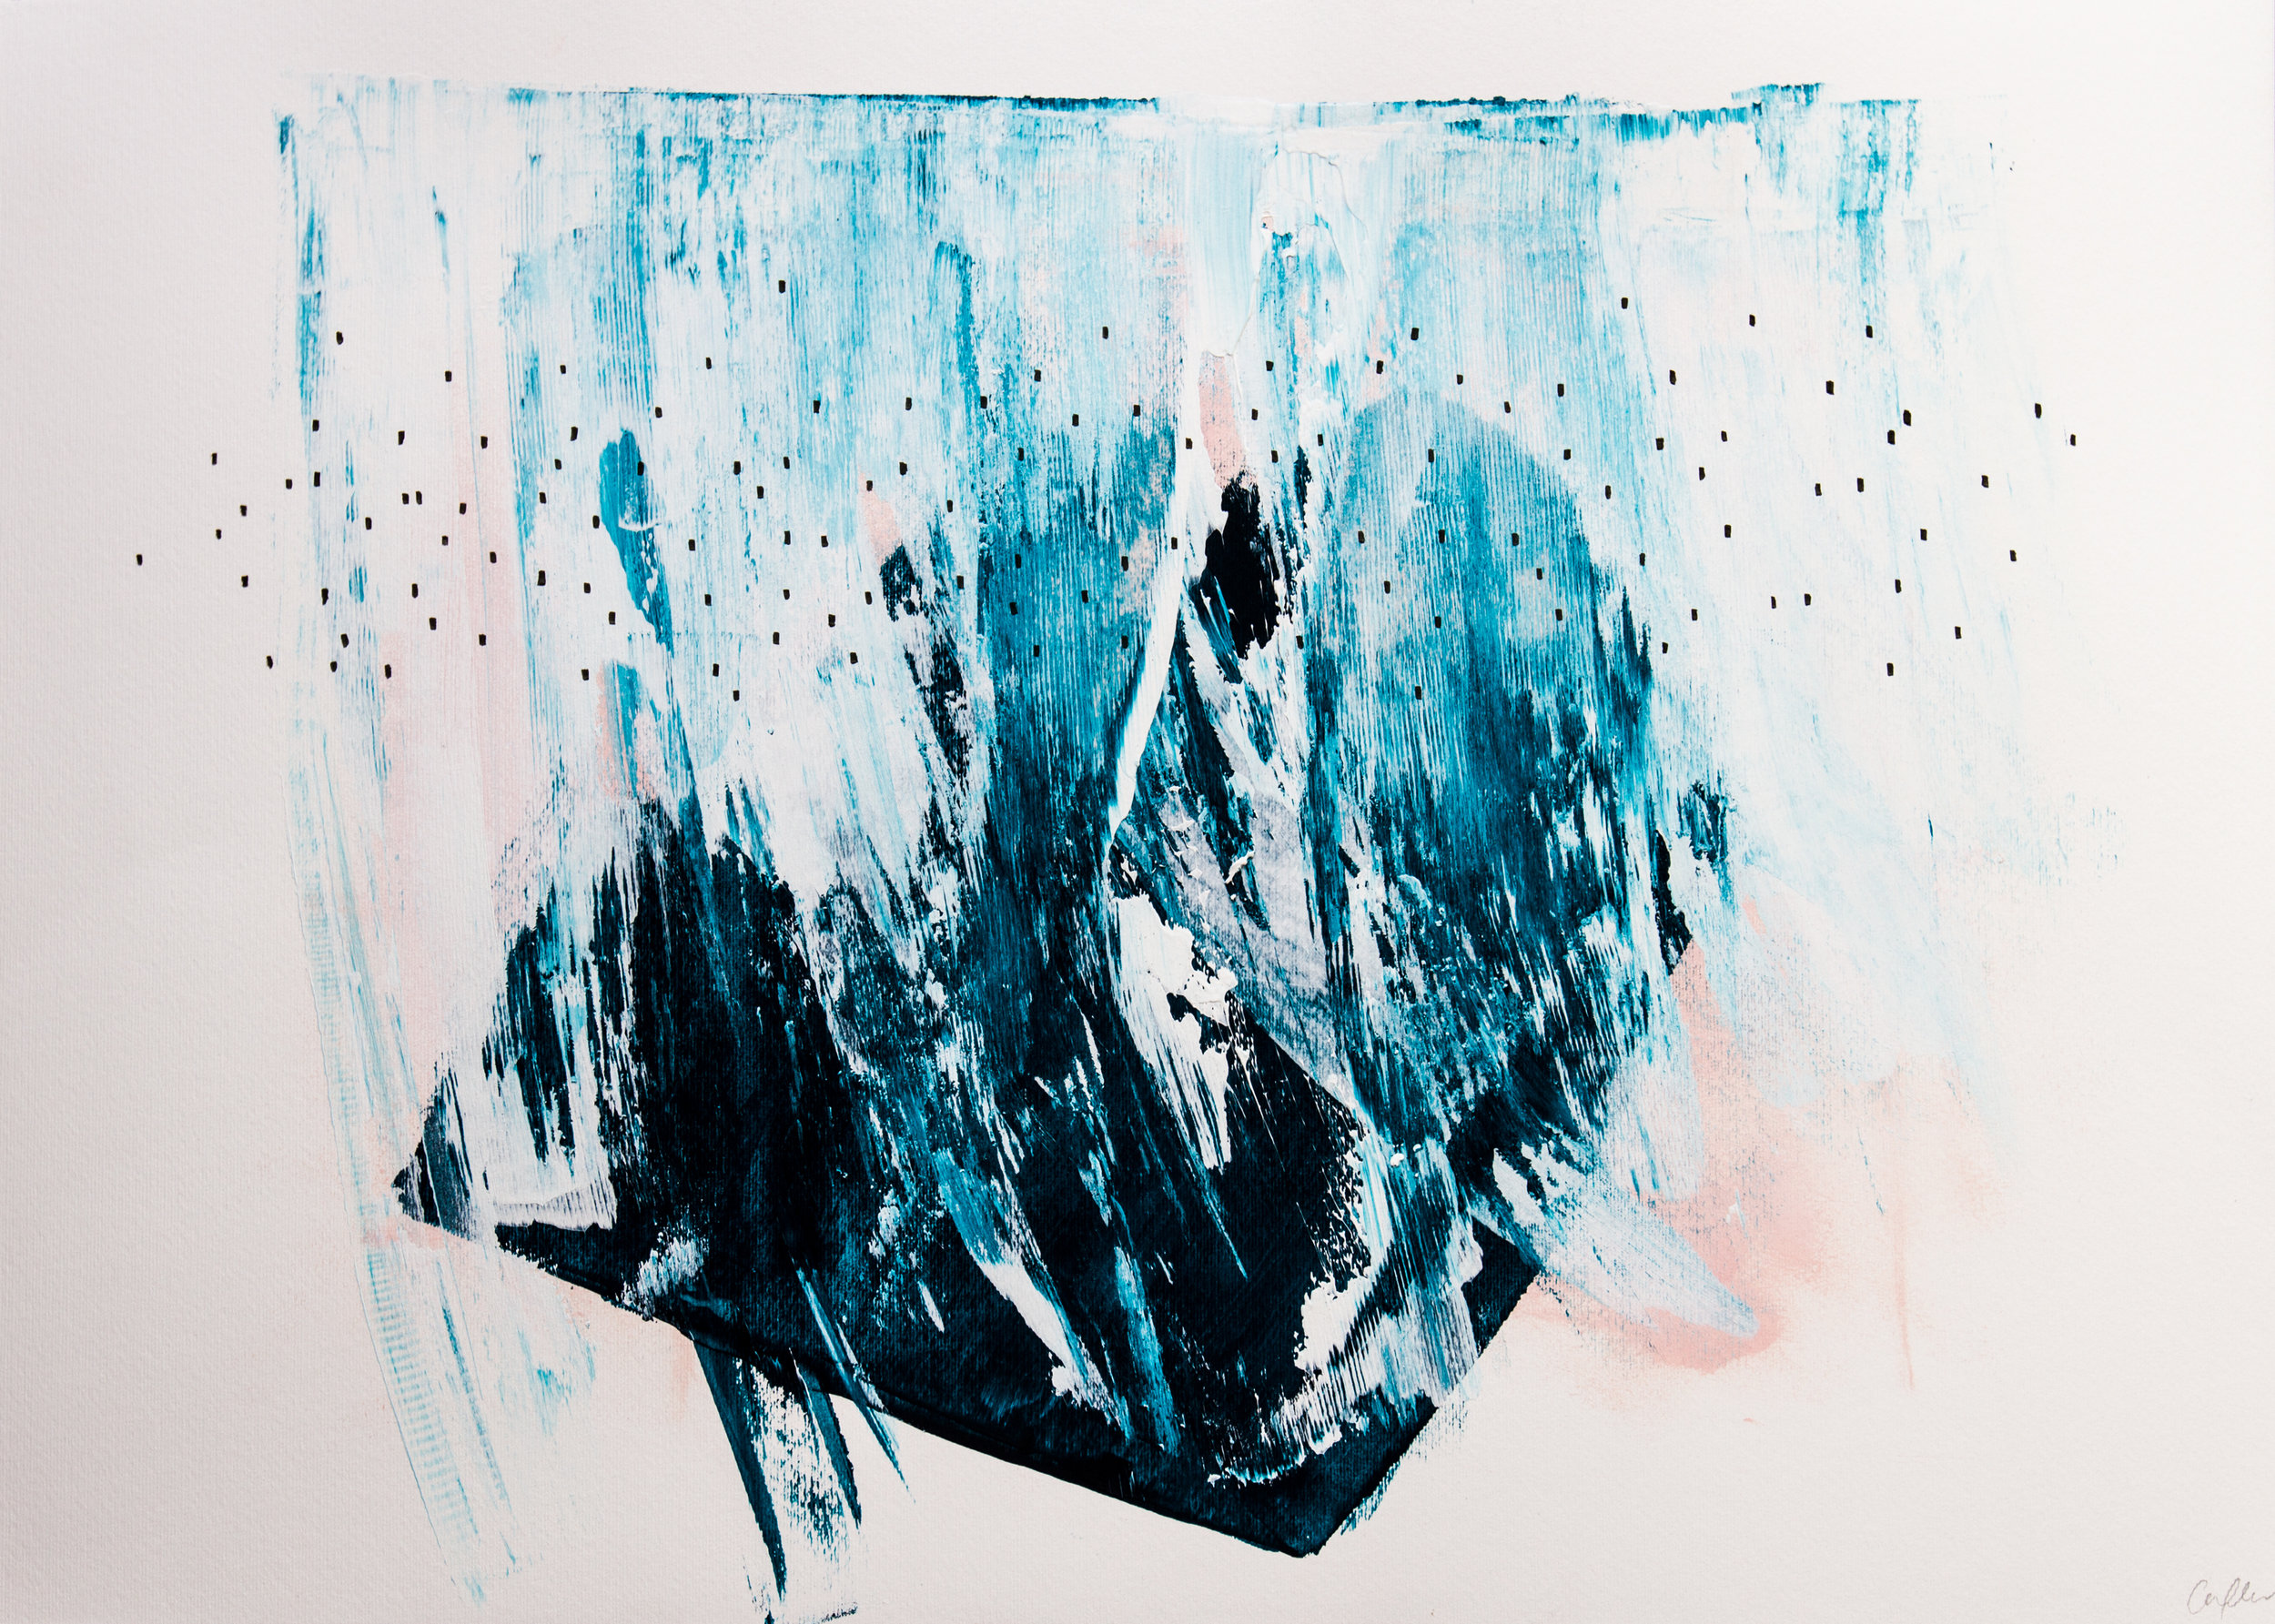 23.11.17 - LOGBOOK ENTRY 6: TALKING INSPIRATION WITH CHARLOTTE A FLEUR  Charlotte is an abstract artist living and working in North London. Her works explore colour and how intuition can influence mark-making and composition....